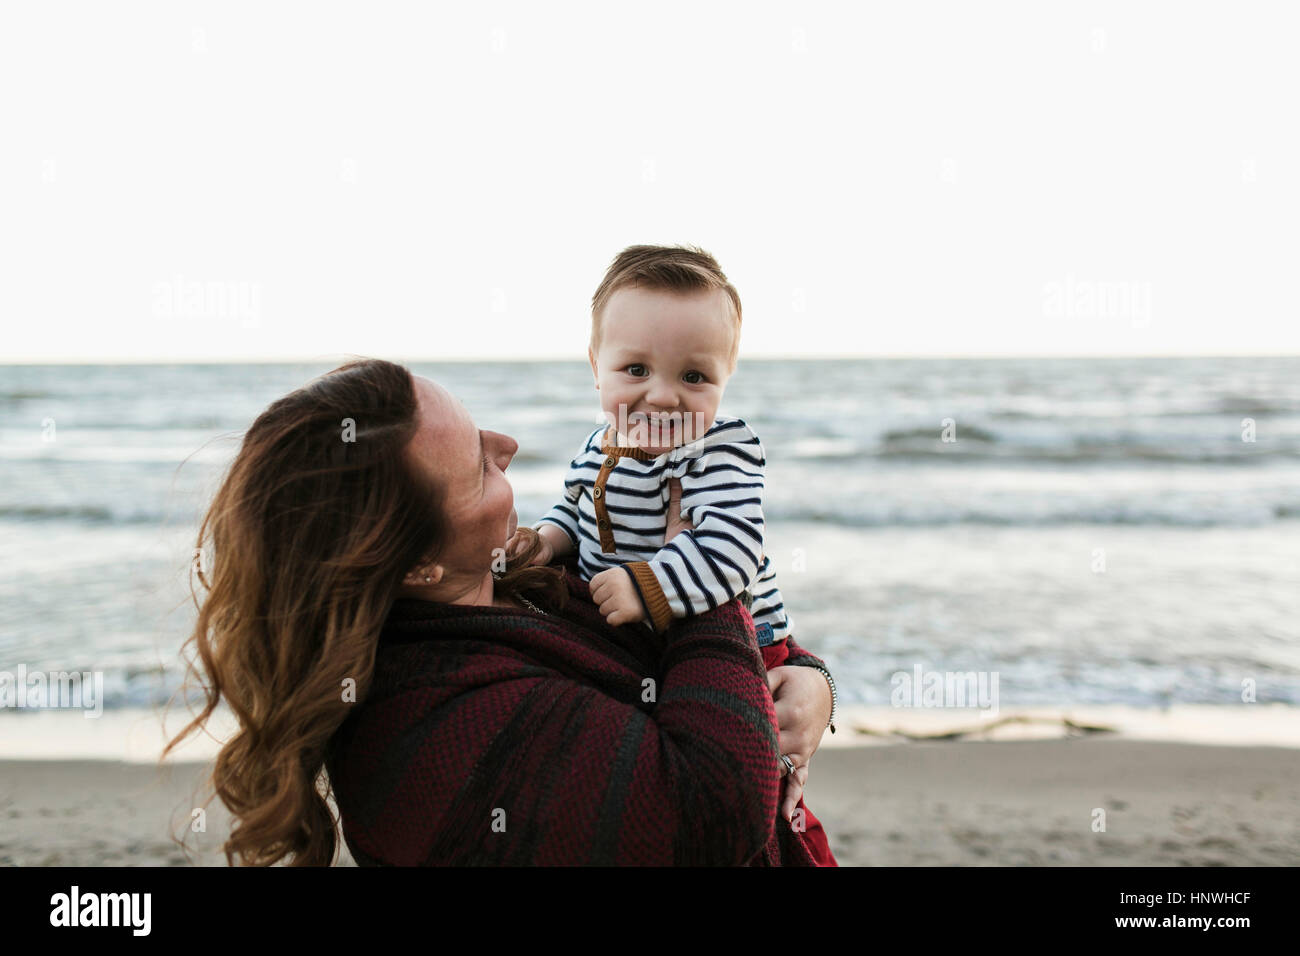 Mother on beach holding smiling baby boy - Stock Image